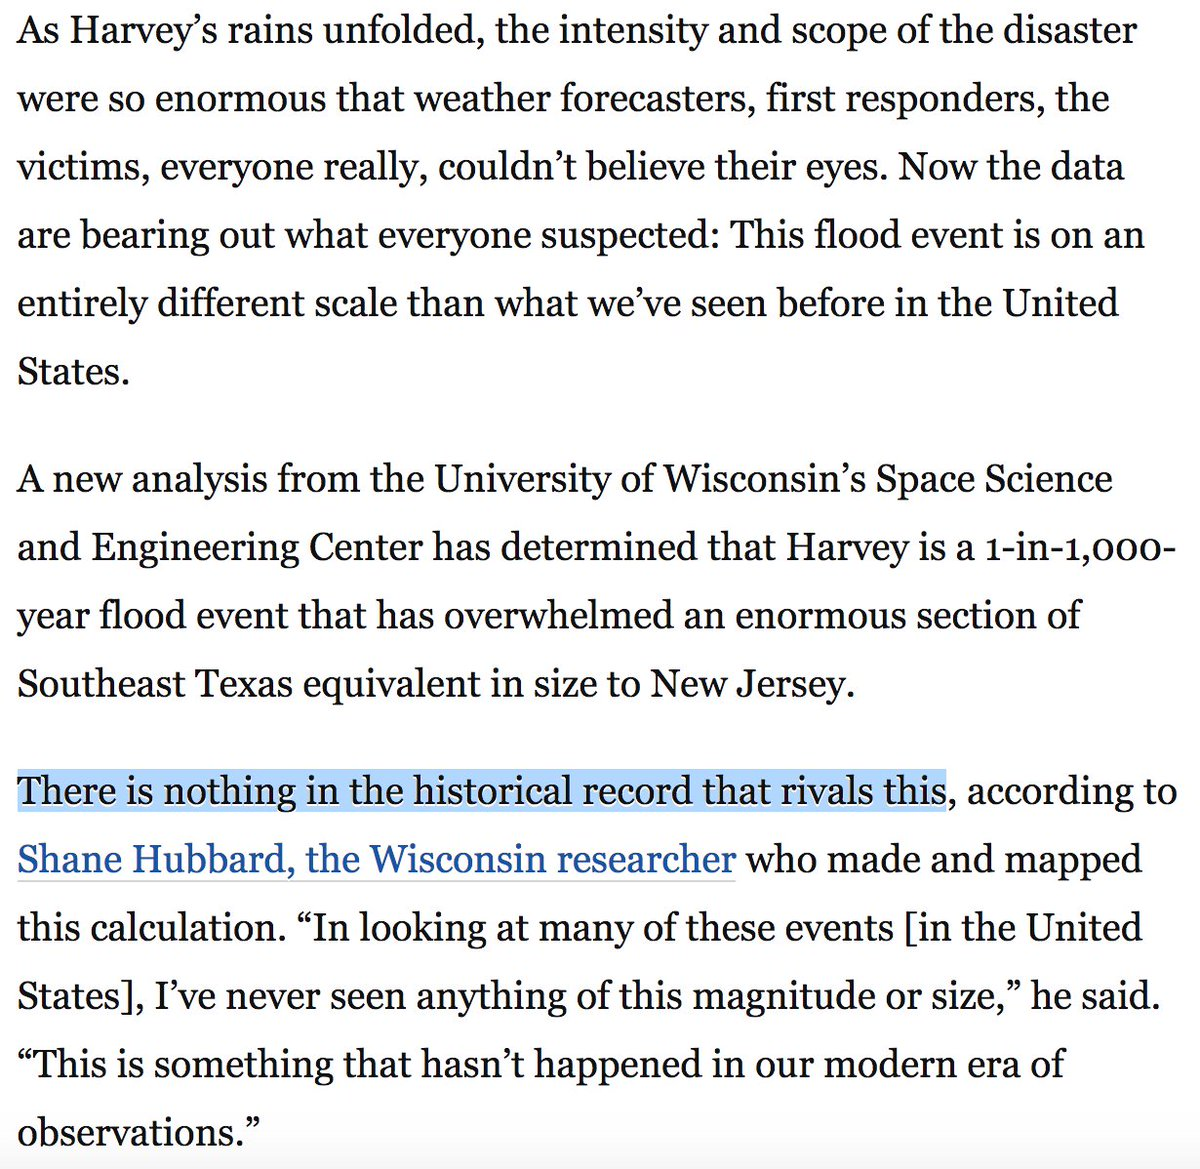 ... storms in U.S. history. ...